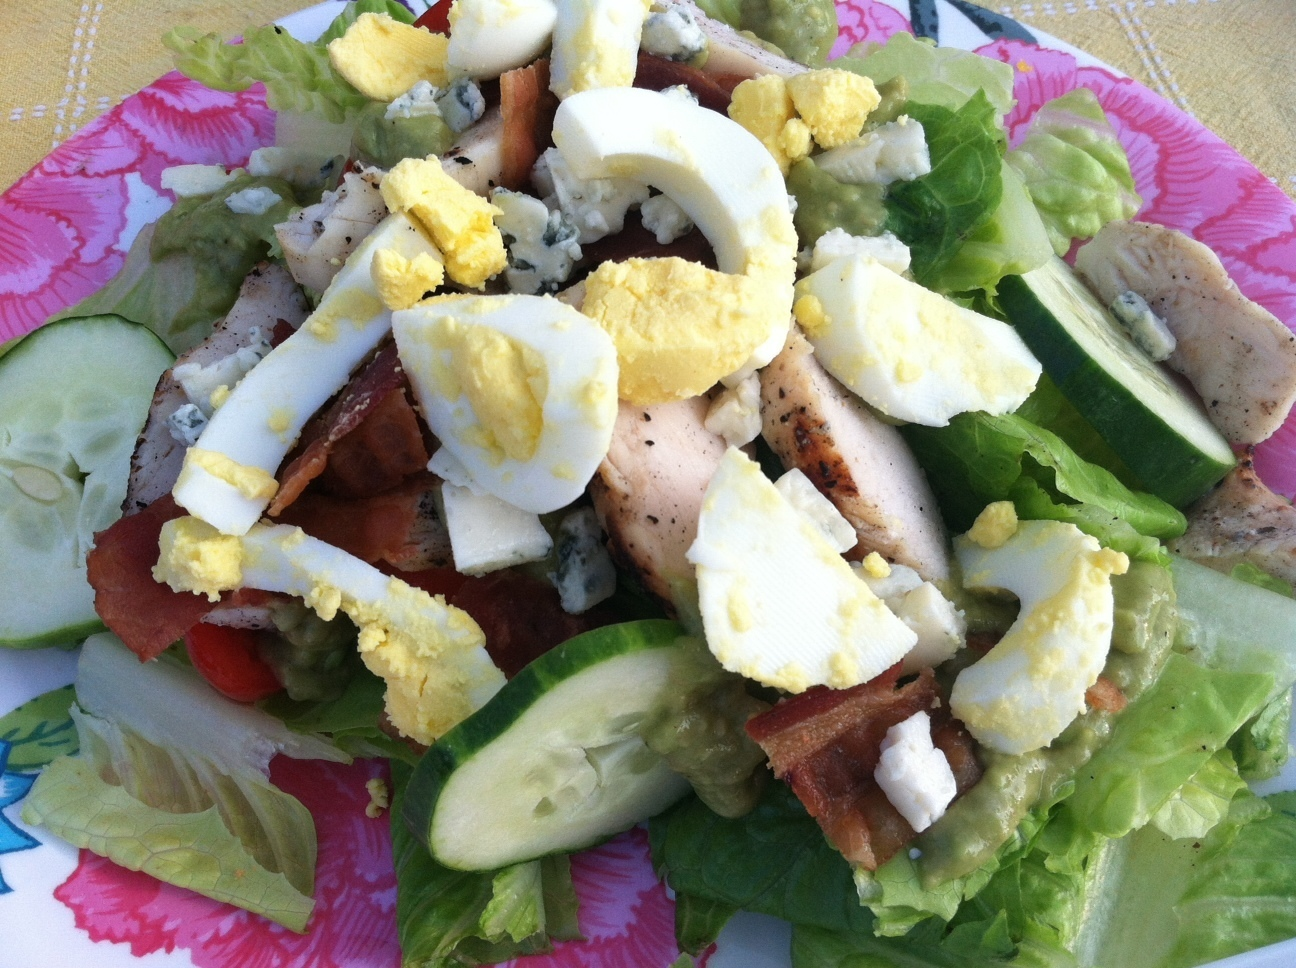 Grilled Chicken Cobb Salad with Avocado Dressing